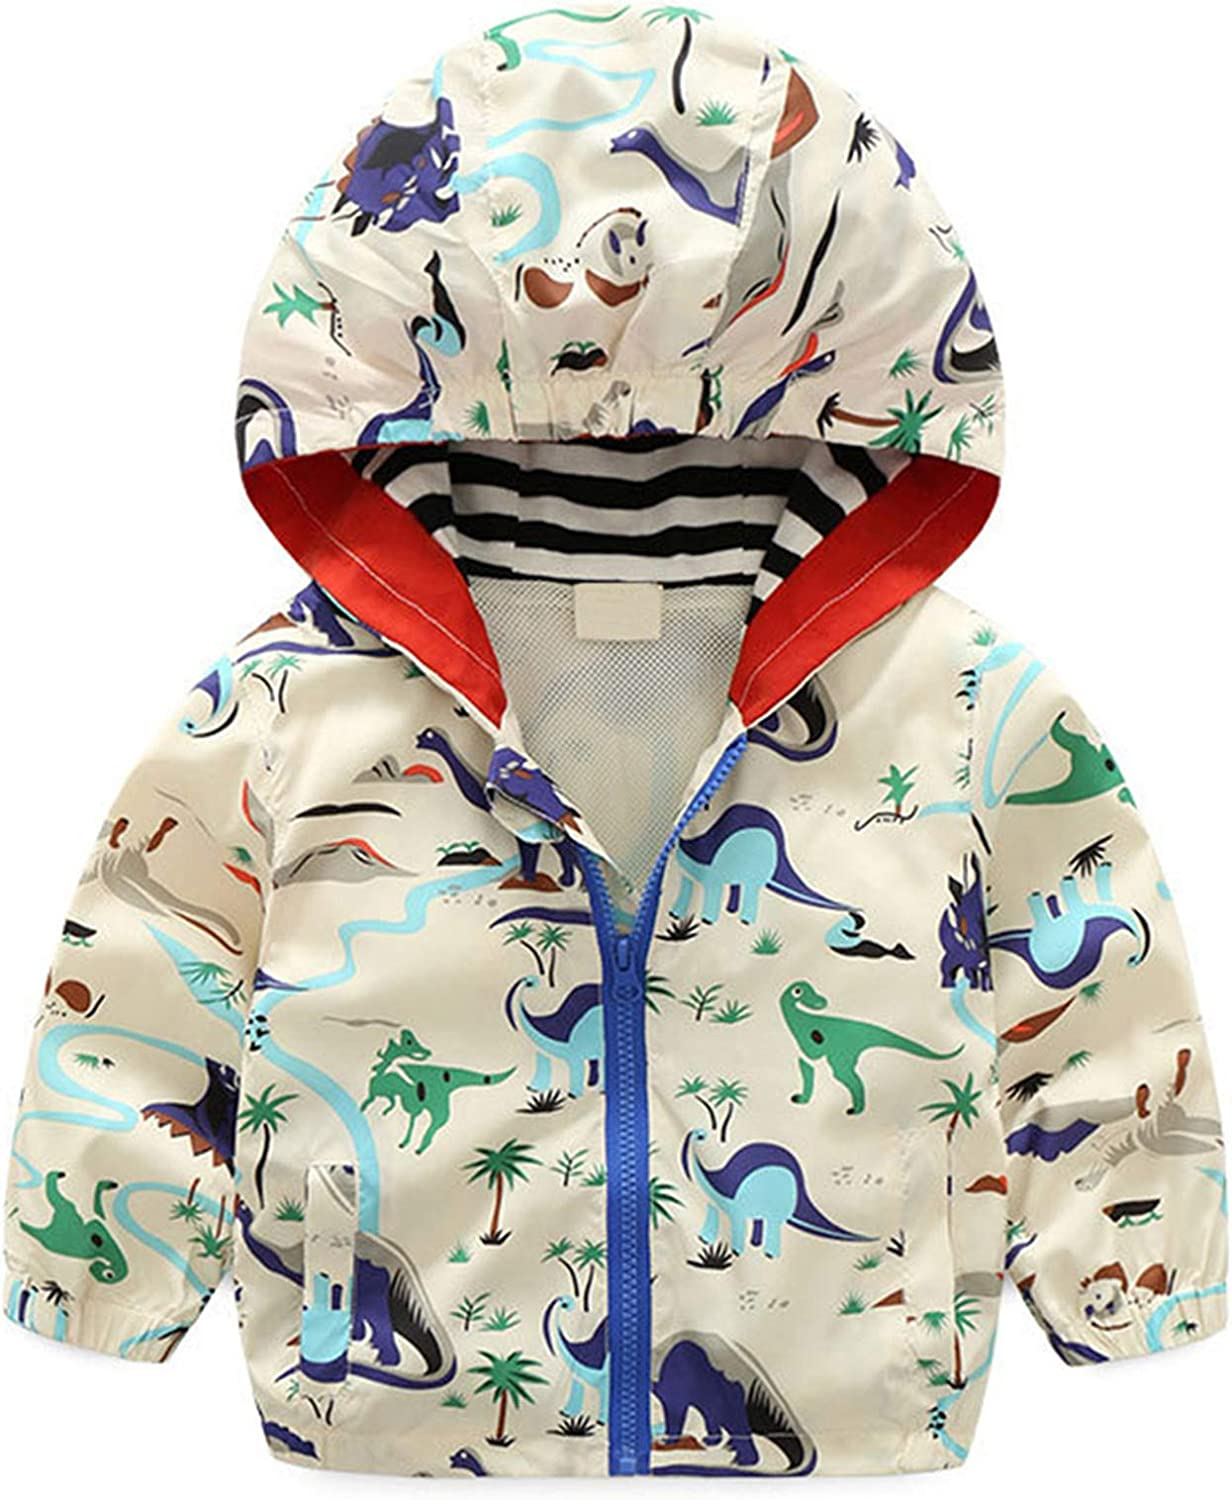 Toddler Boy Jacket Dinosaur Baby Jacket Zipper Hooded Outwear Windproof Coat